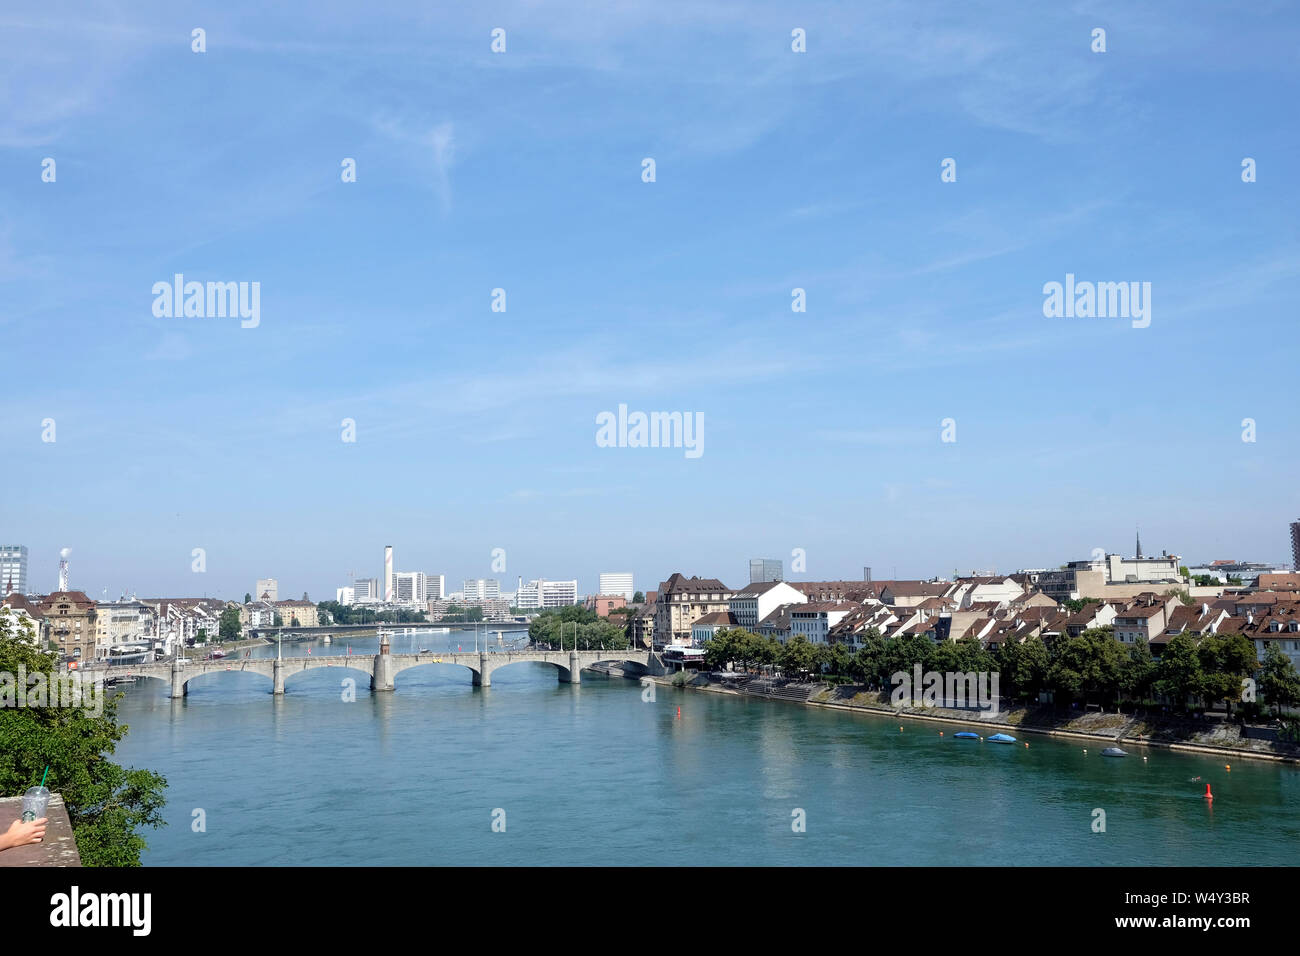 A view of Basel skyline from the Pfalz viewing terrace, Switzerland Stock Photo